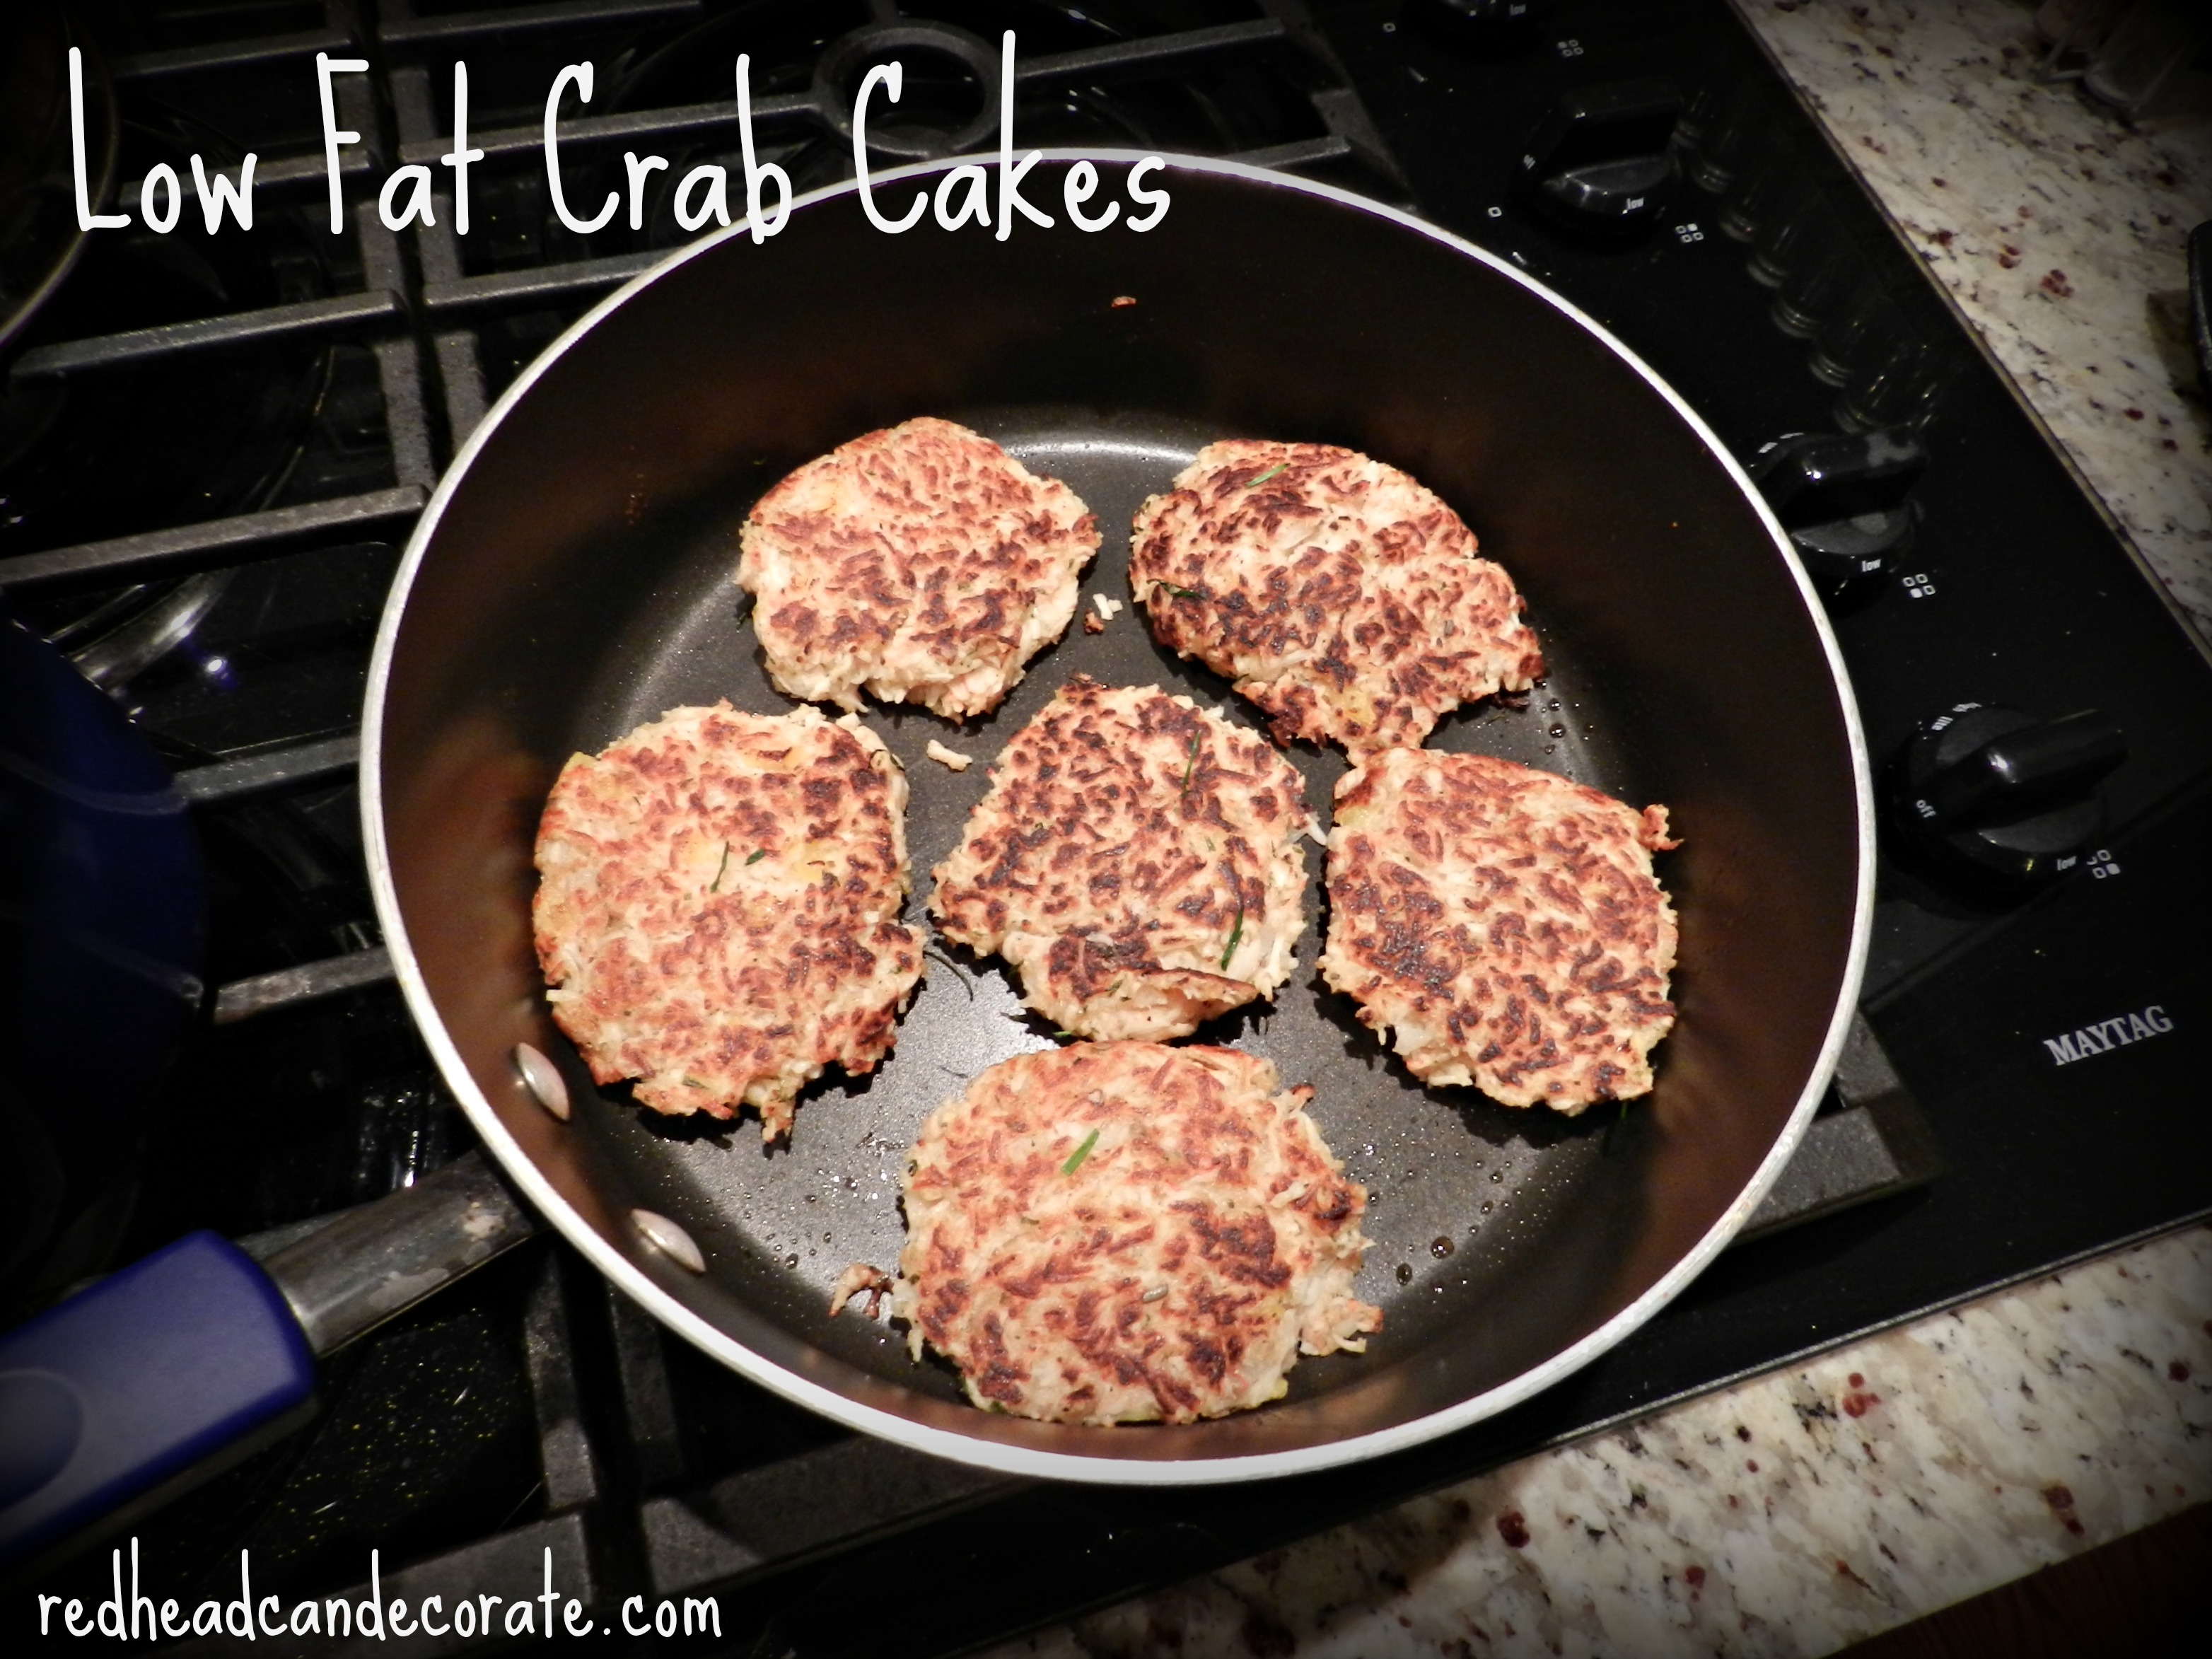 Low Fat Crab Cakes w: tons of flavor and texture.